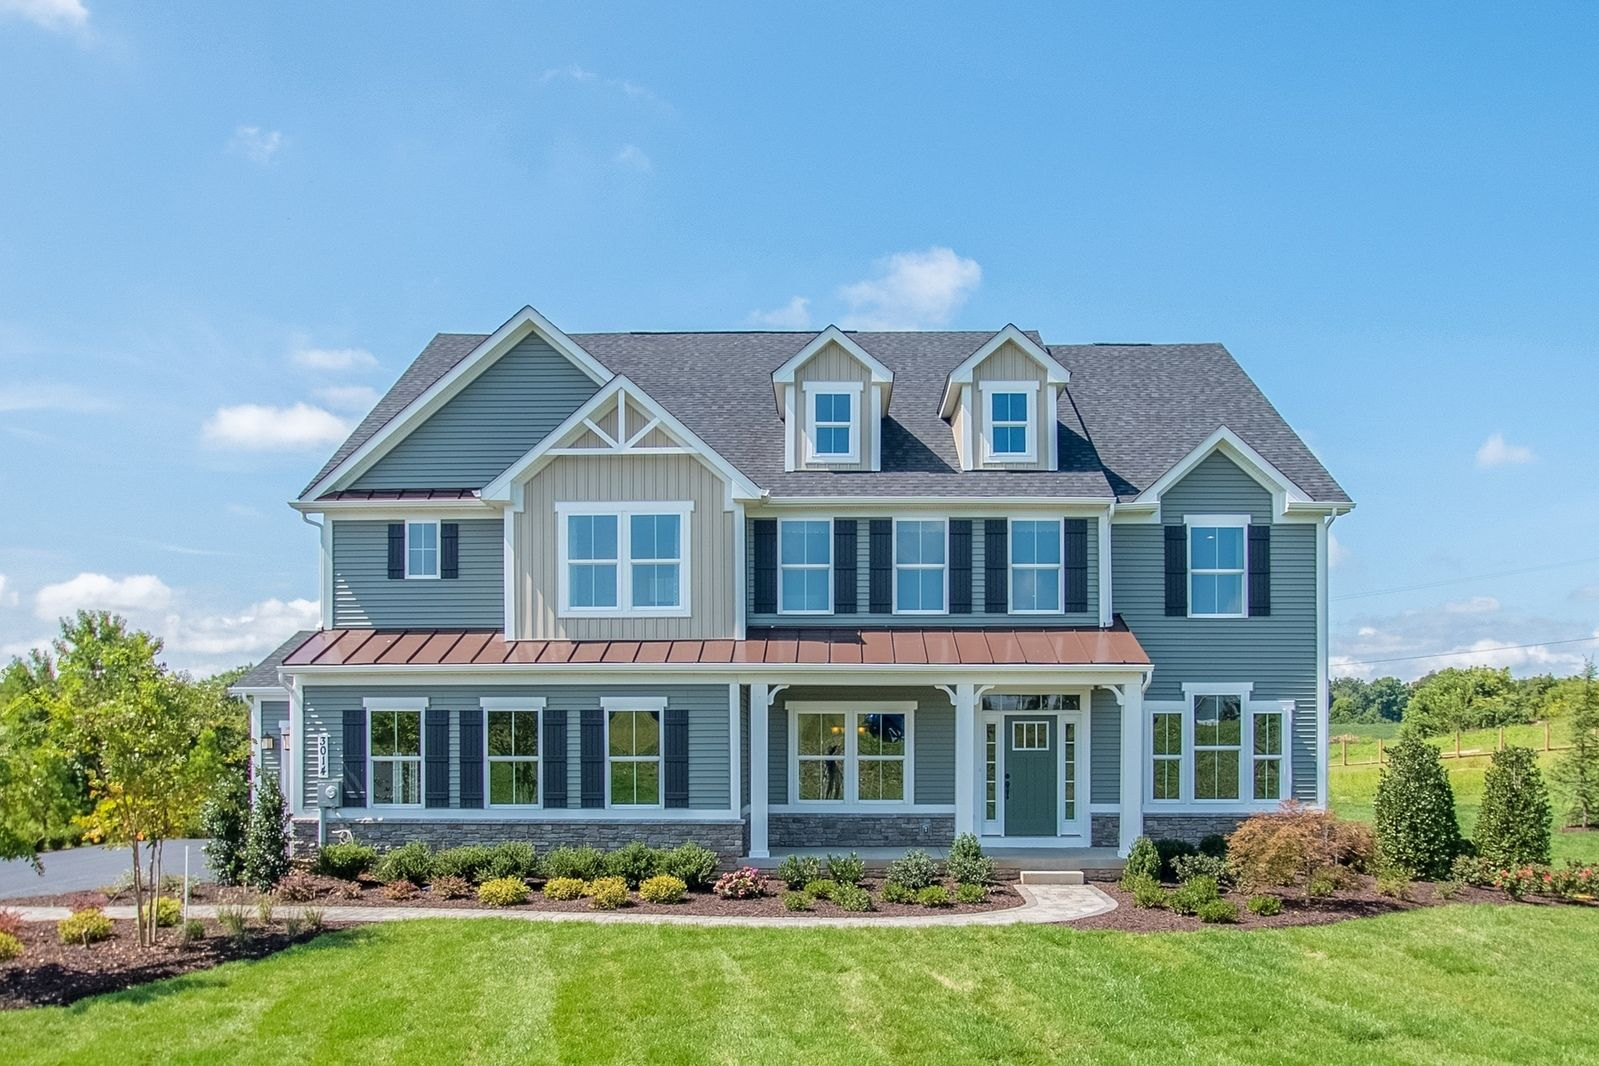 WELCOME TO STONERIDGE FARMS:Pittsburgh's #1 Builder Ryan Homes' only new luxury community with 1/2 to 1 acre homesites in Mars.Click here to schedule your appointment!